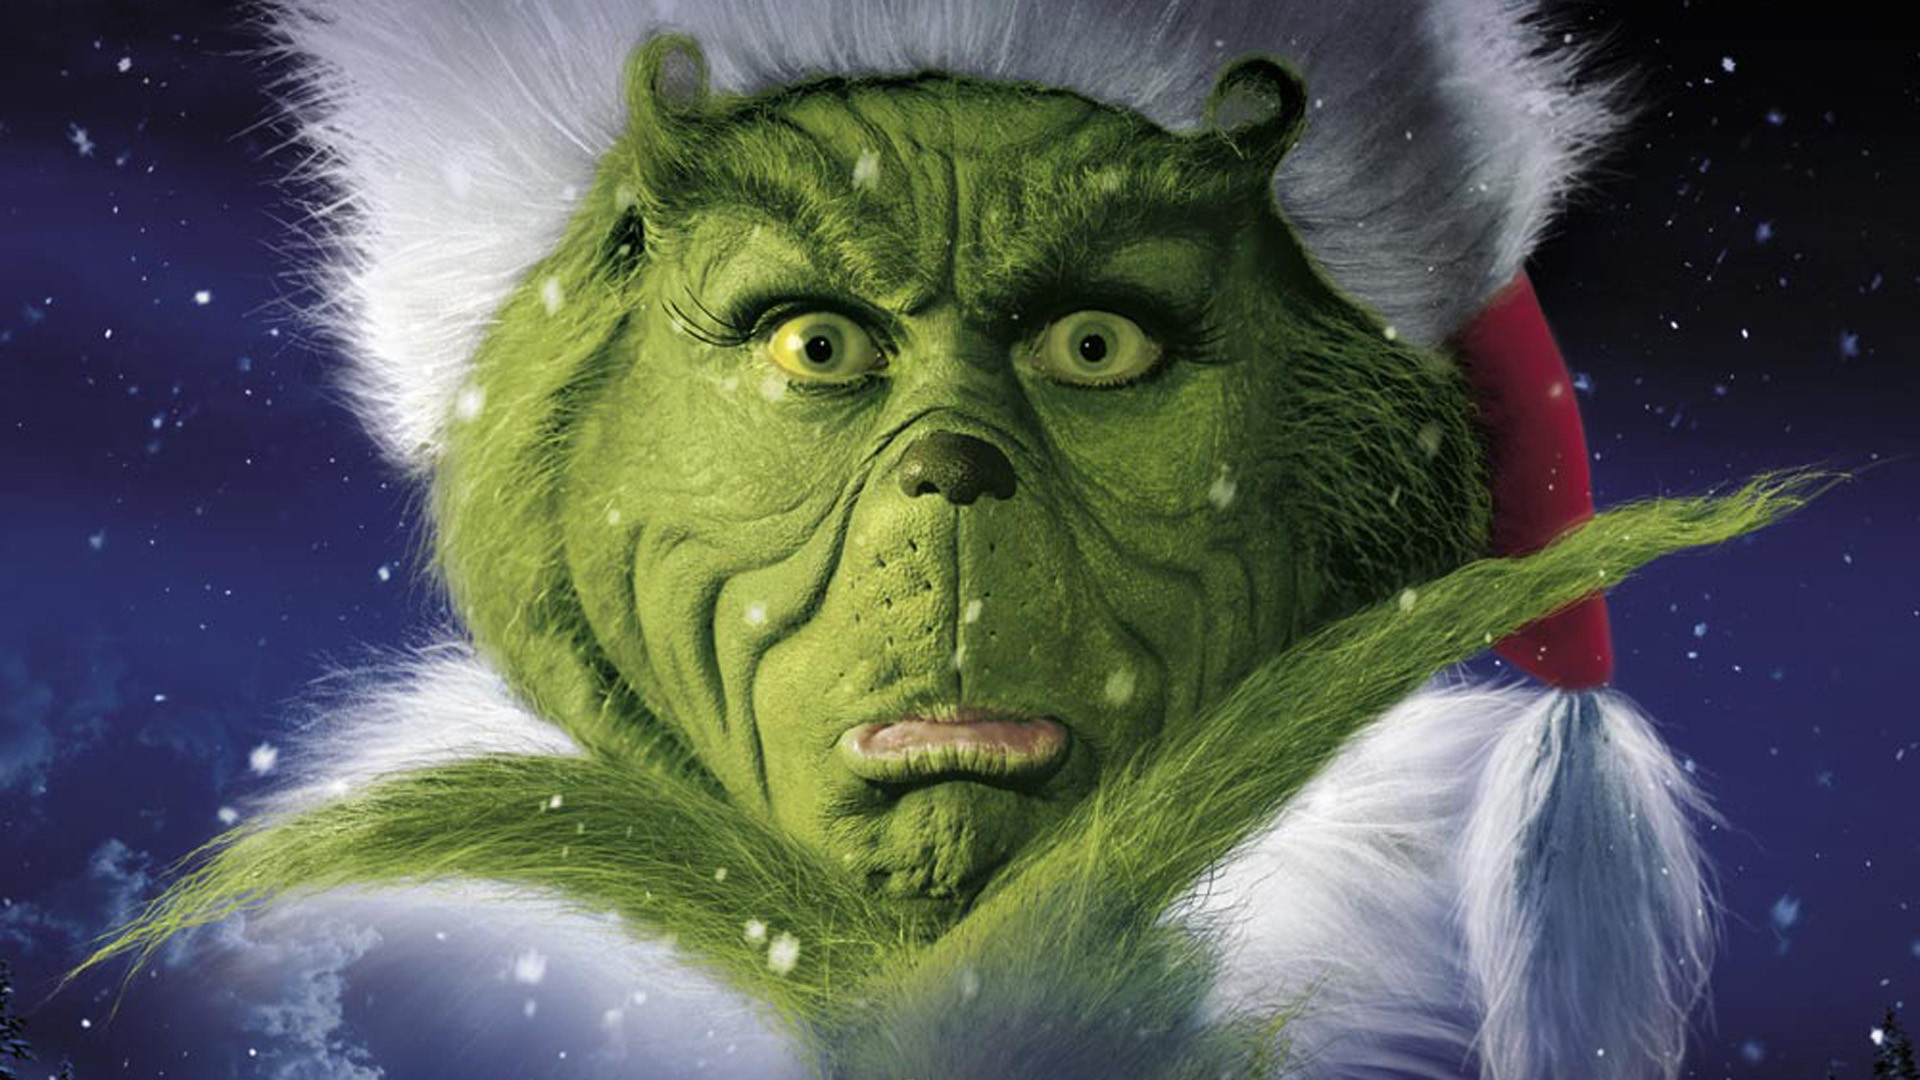 the grinch that stole christmas 1966 watch online